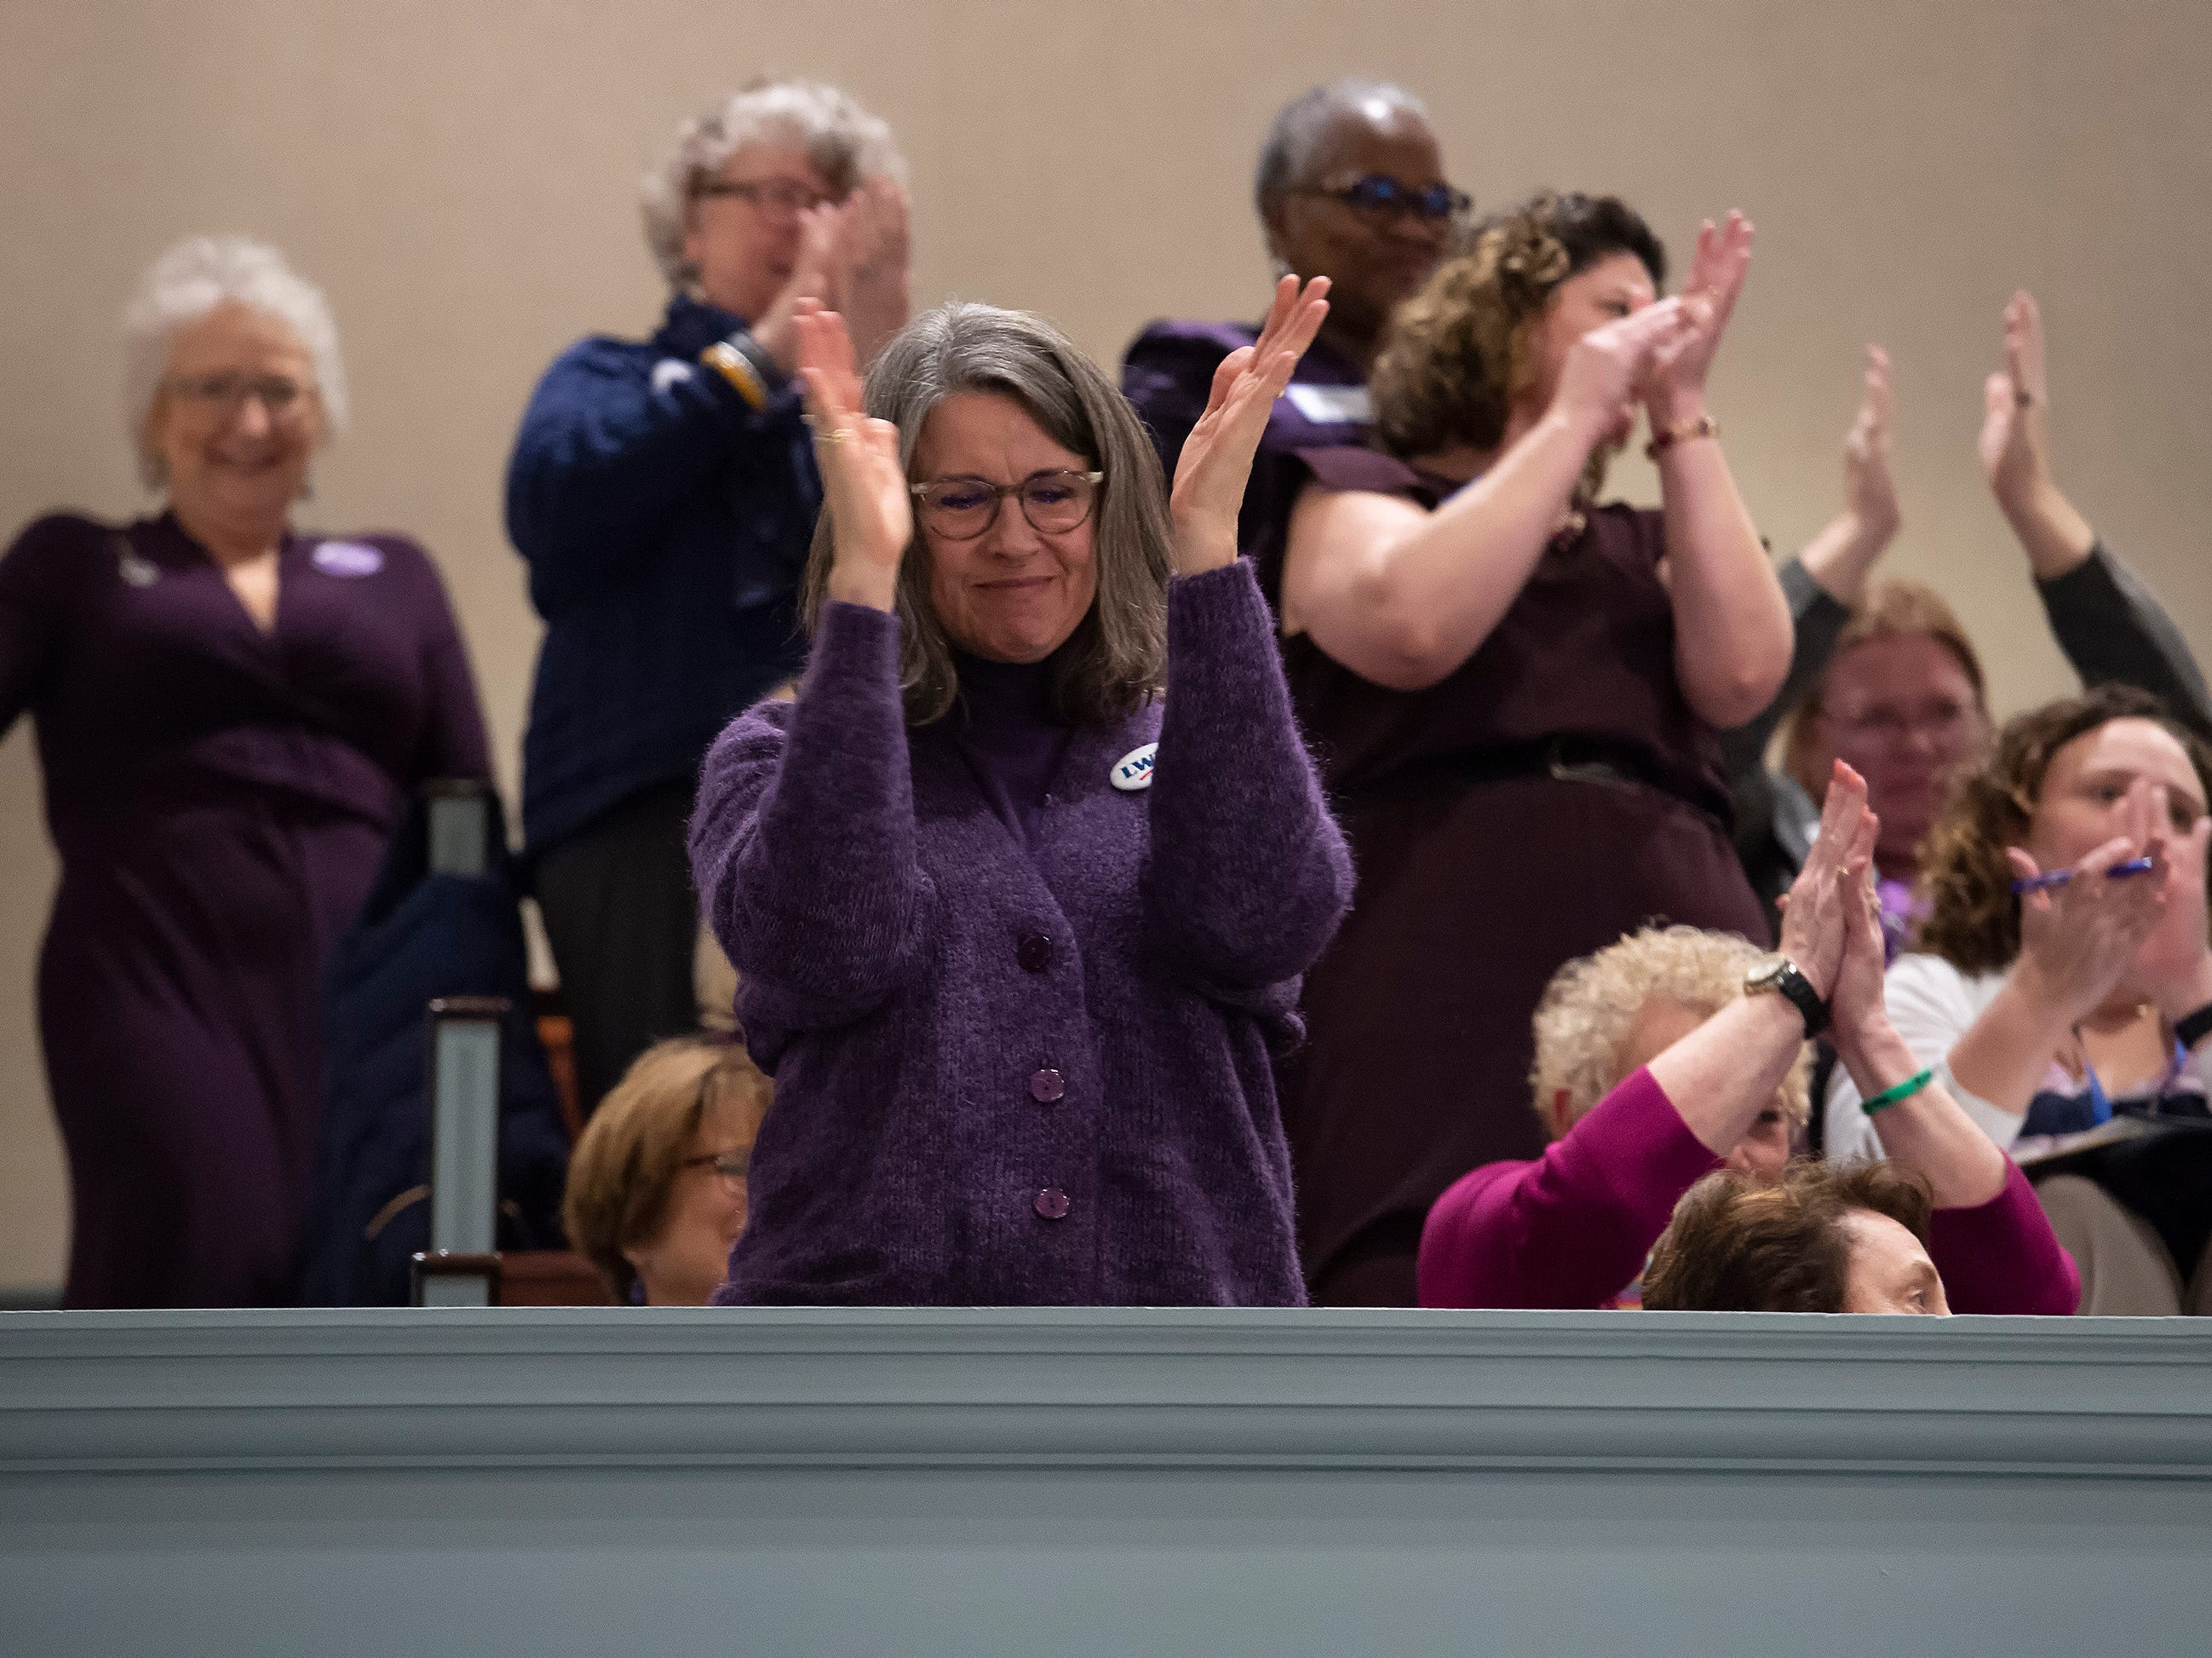 Visitors cheer after the house passes House Bill 1, equal rights amendment to the state constitution, during session at Legislative Hall in Dover.